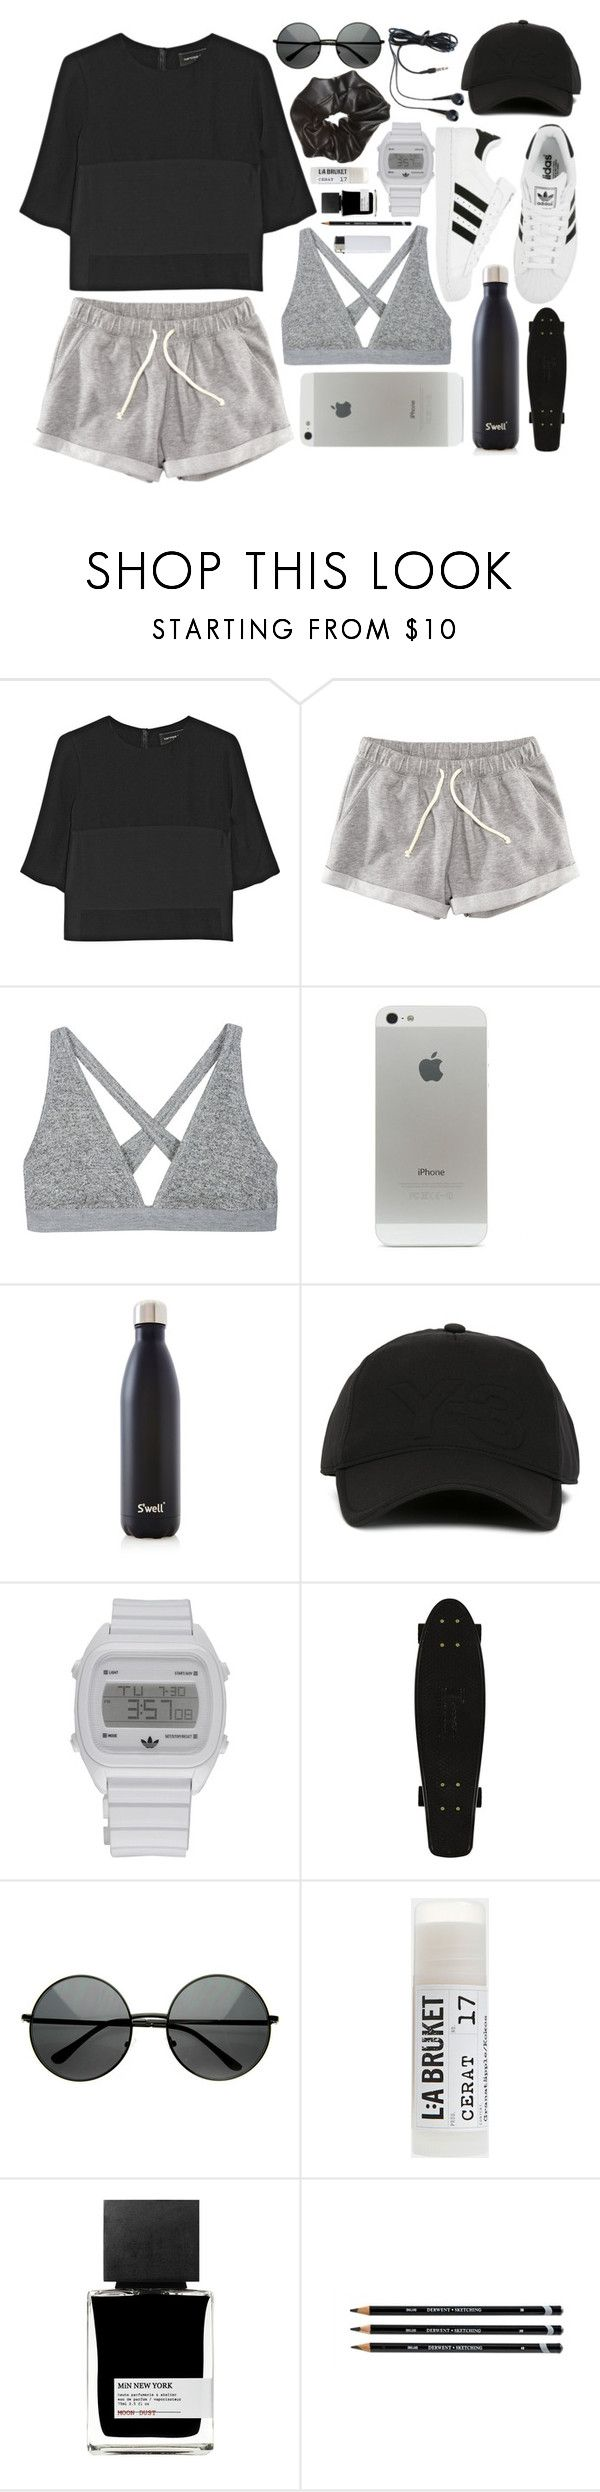 """Sporty fashion"" by rheeee ❤ liked on Polyvore featuring Narciso Rodriguez, H&M, T By Alexander Wang, adidas, S'well, Y-3, Toast and MiN New York"